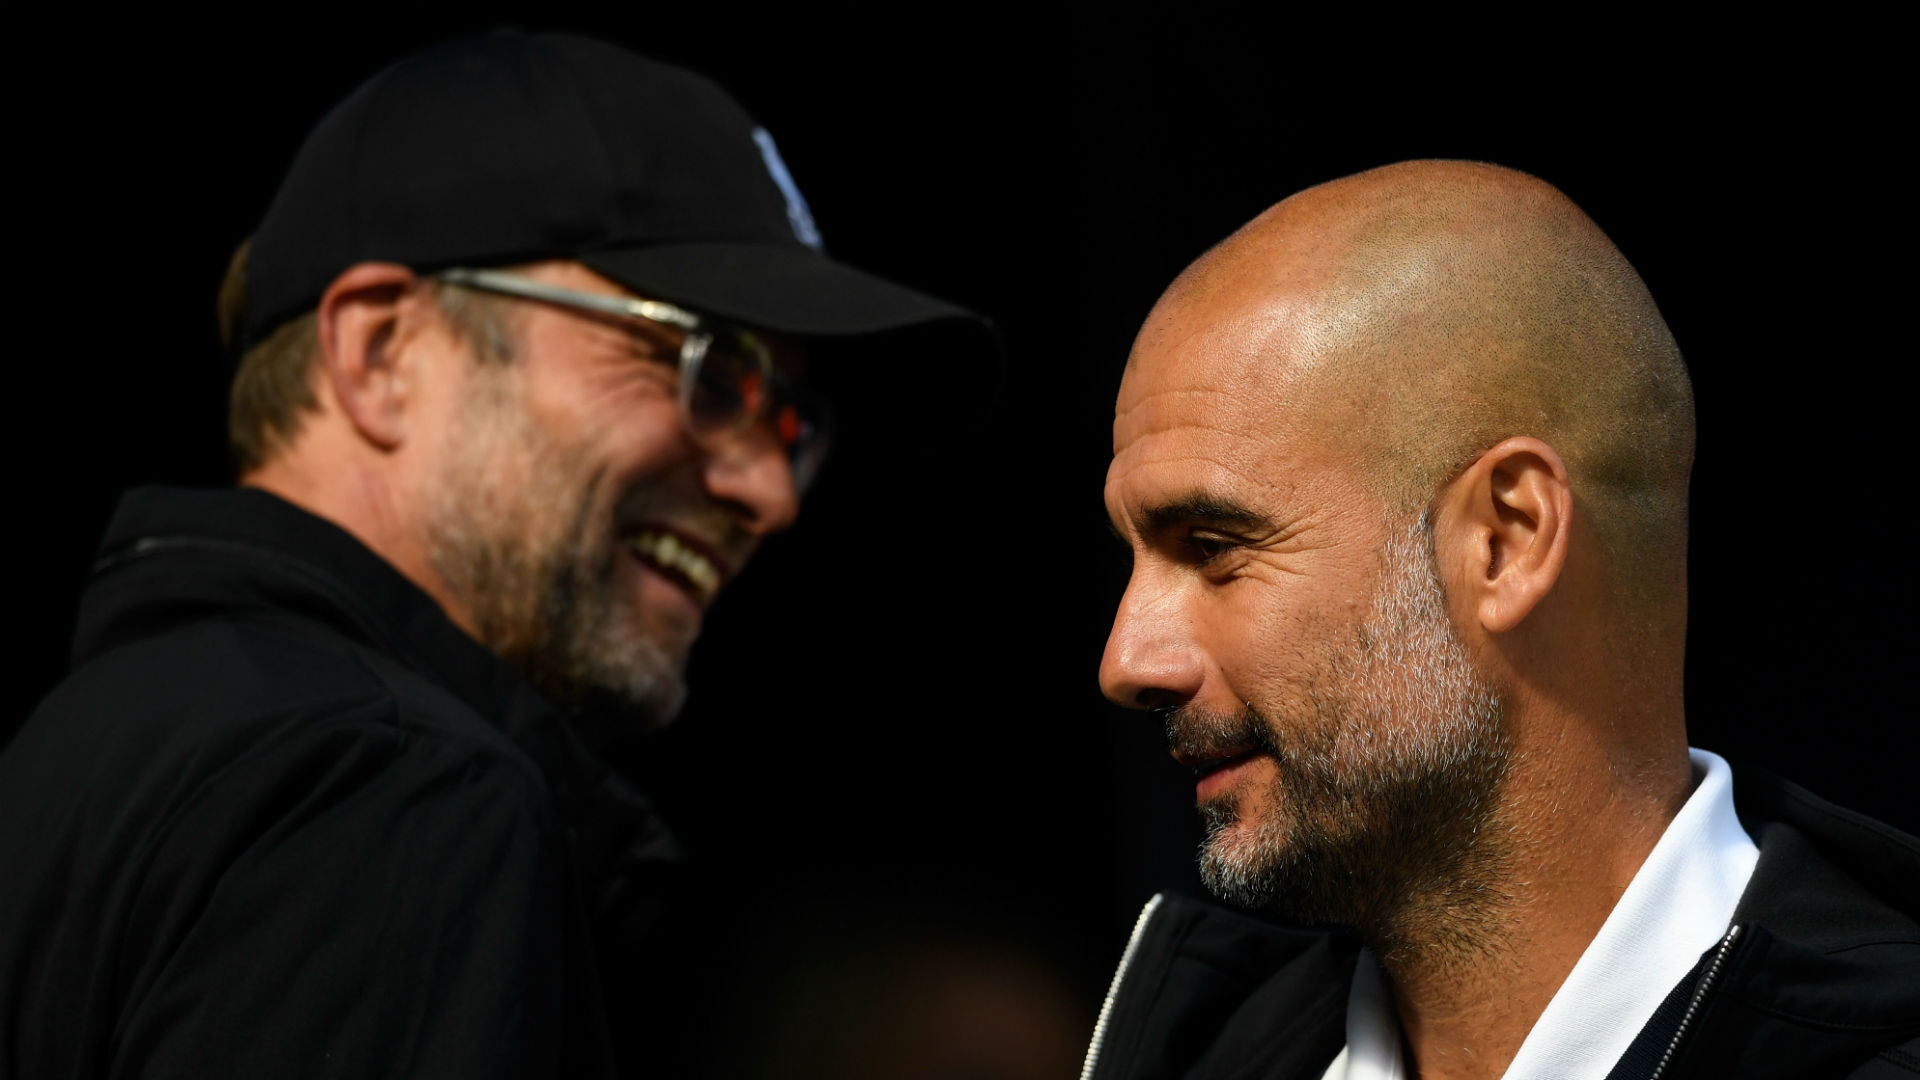 Liverpool v Man City: City remain team to beat, says Klopp